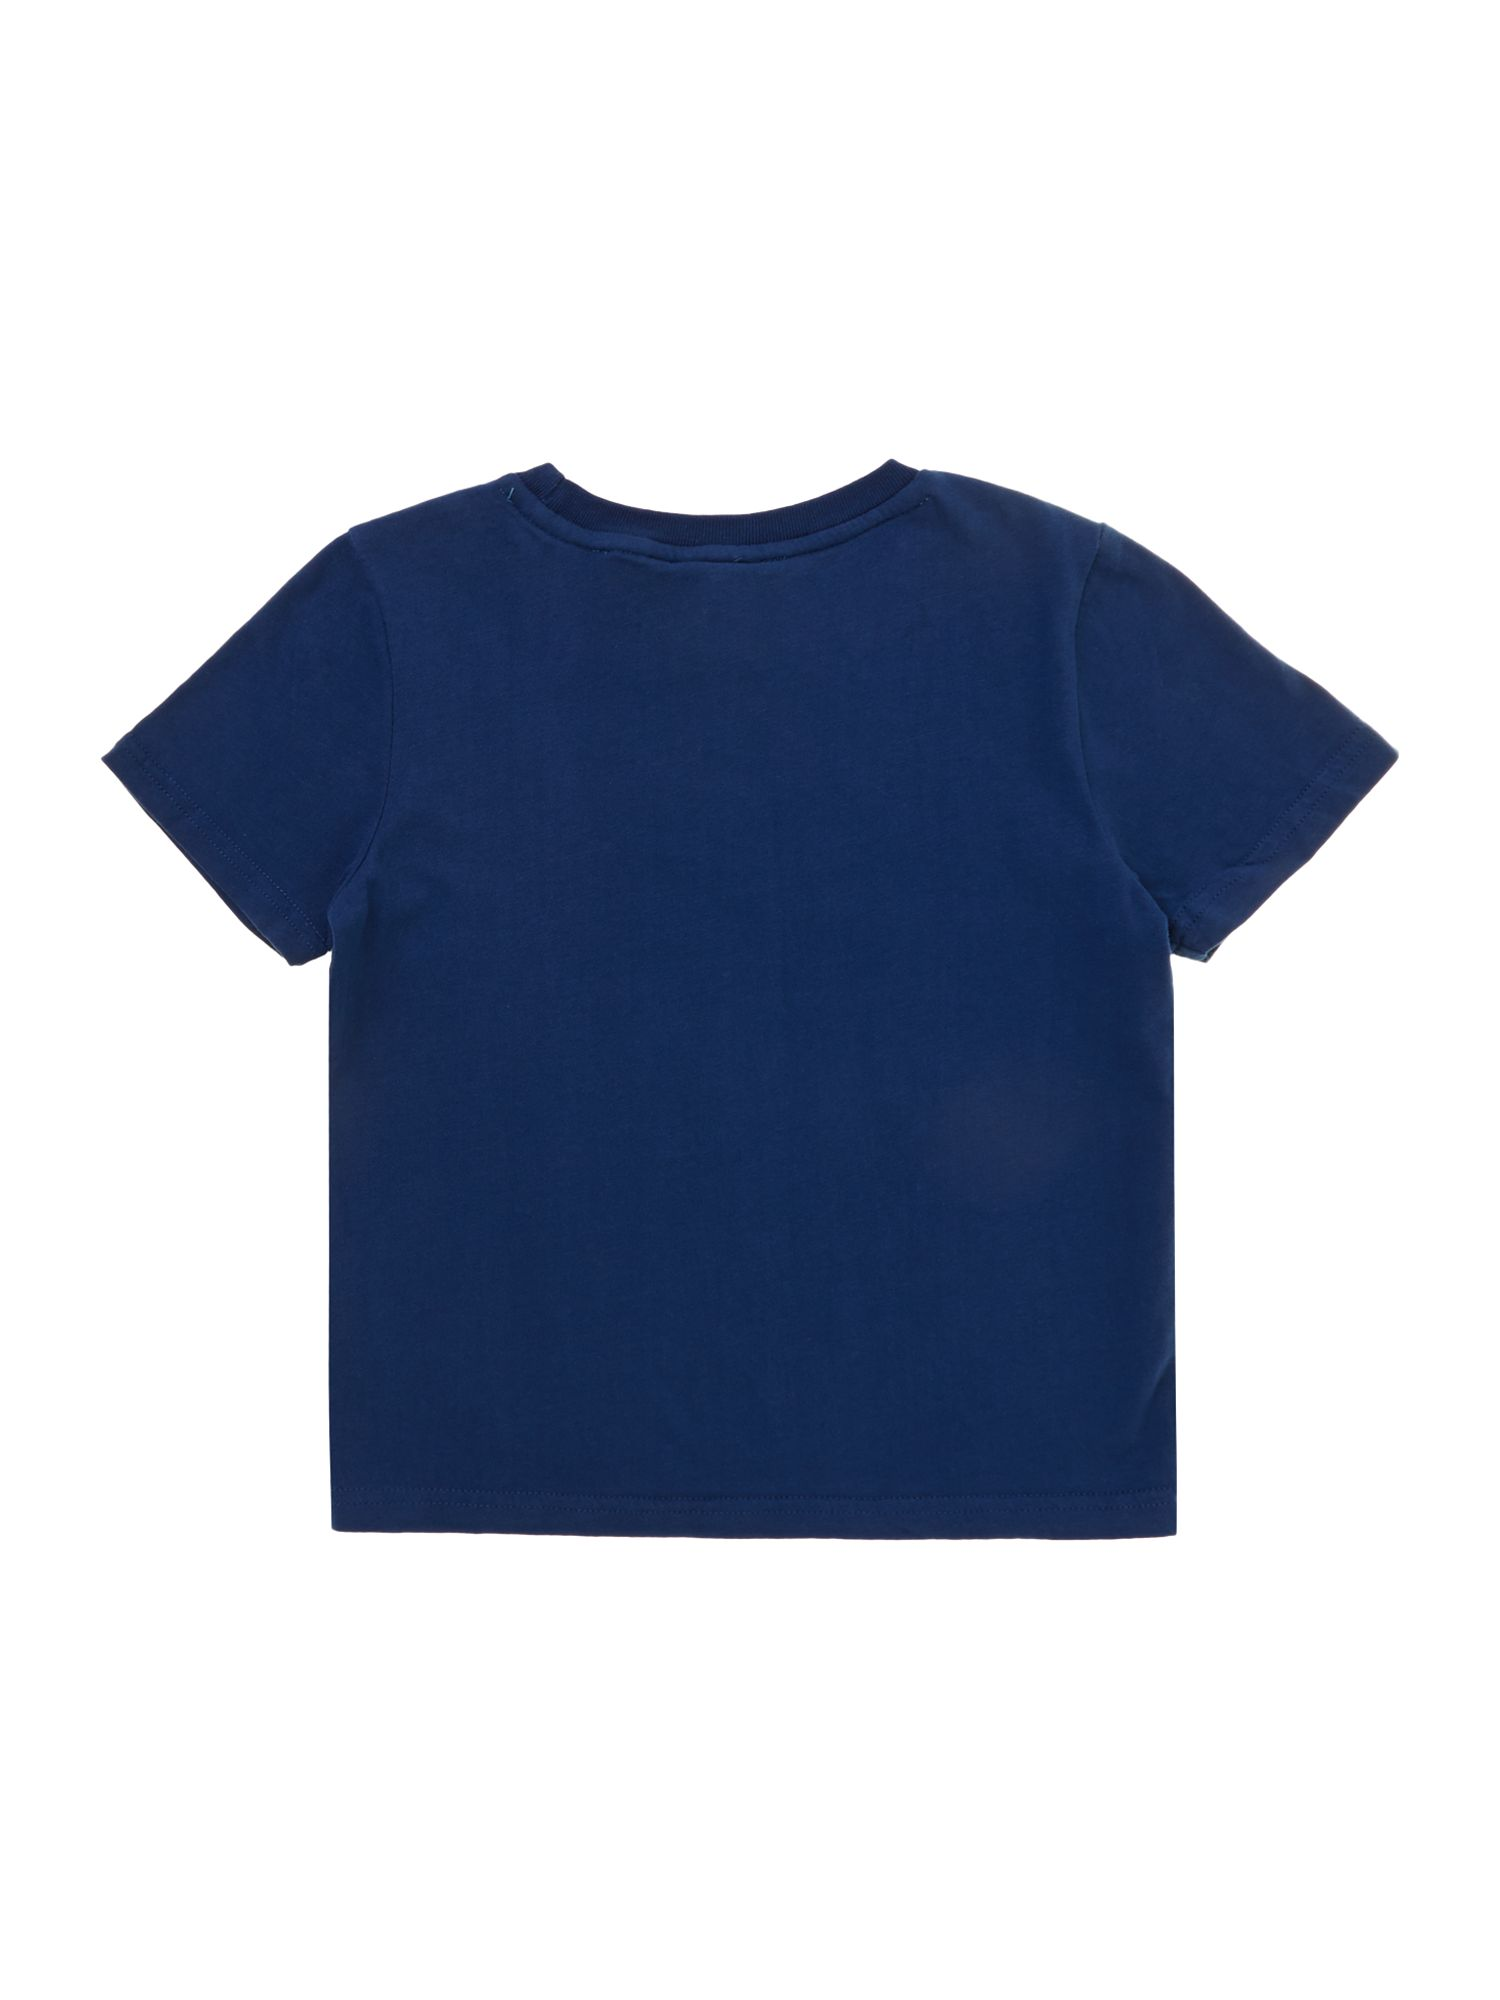 Boys watergate bay graphic t-shirt